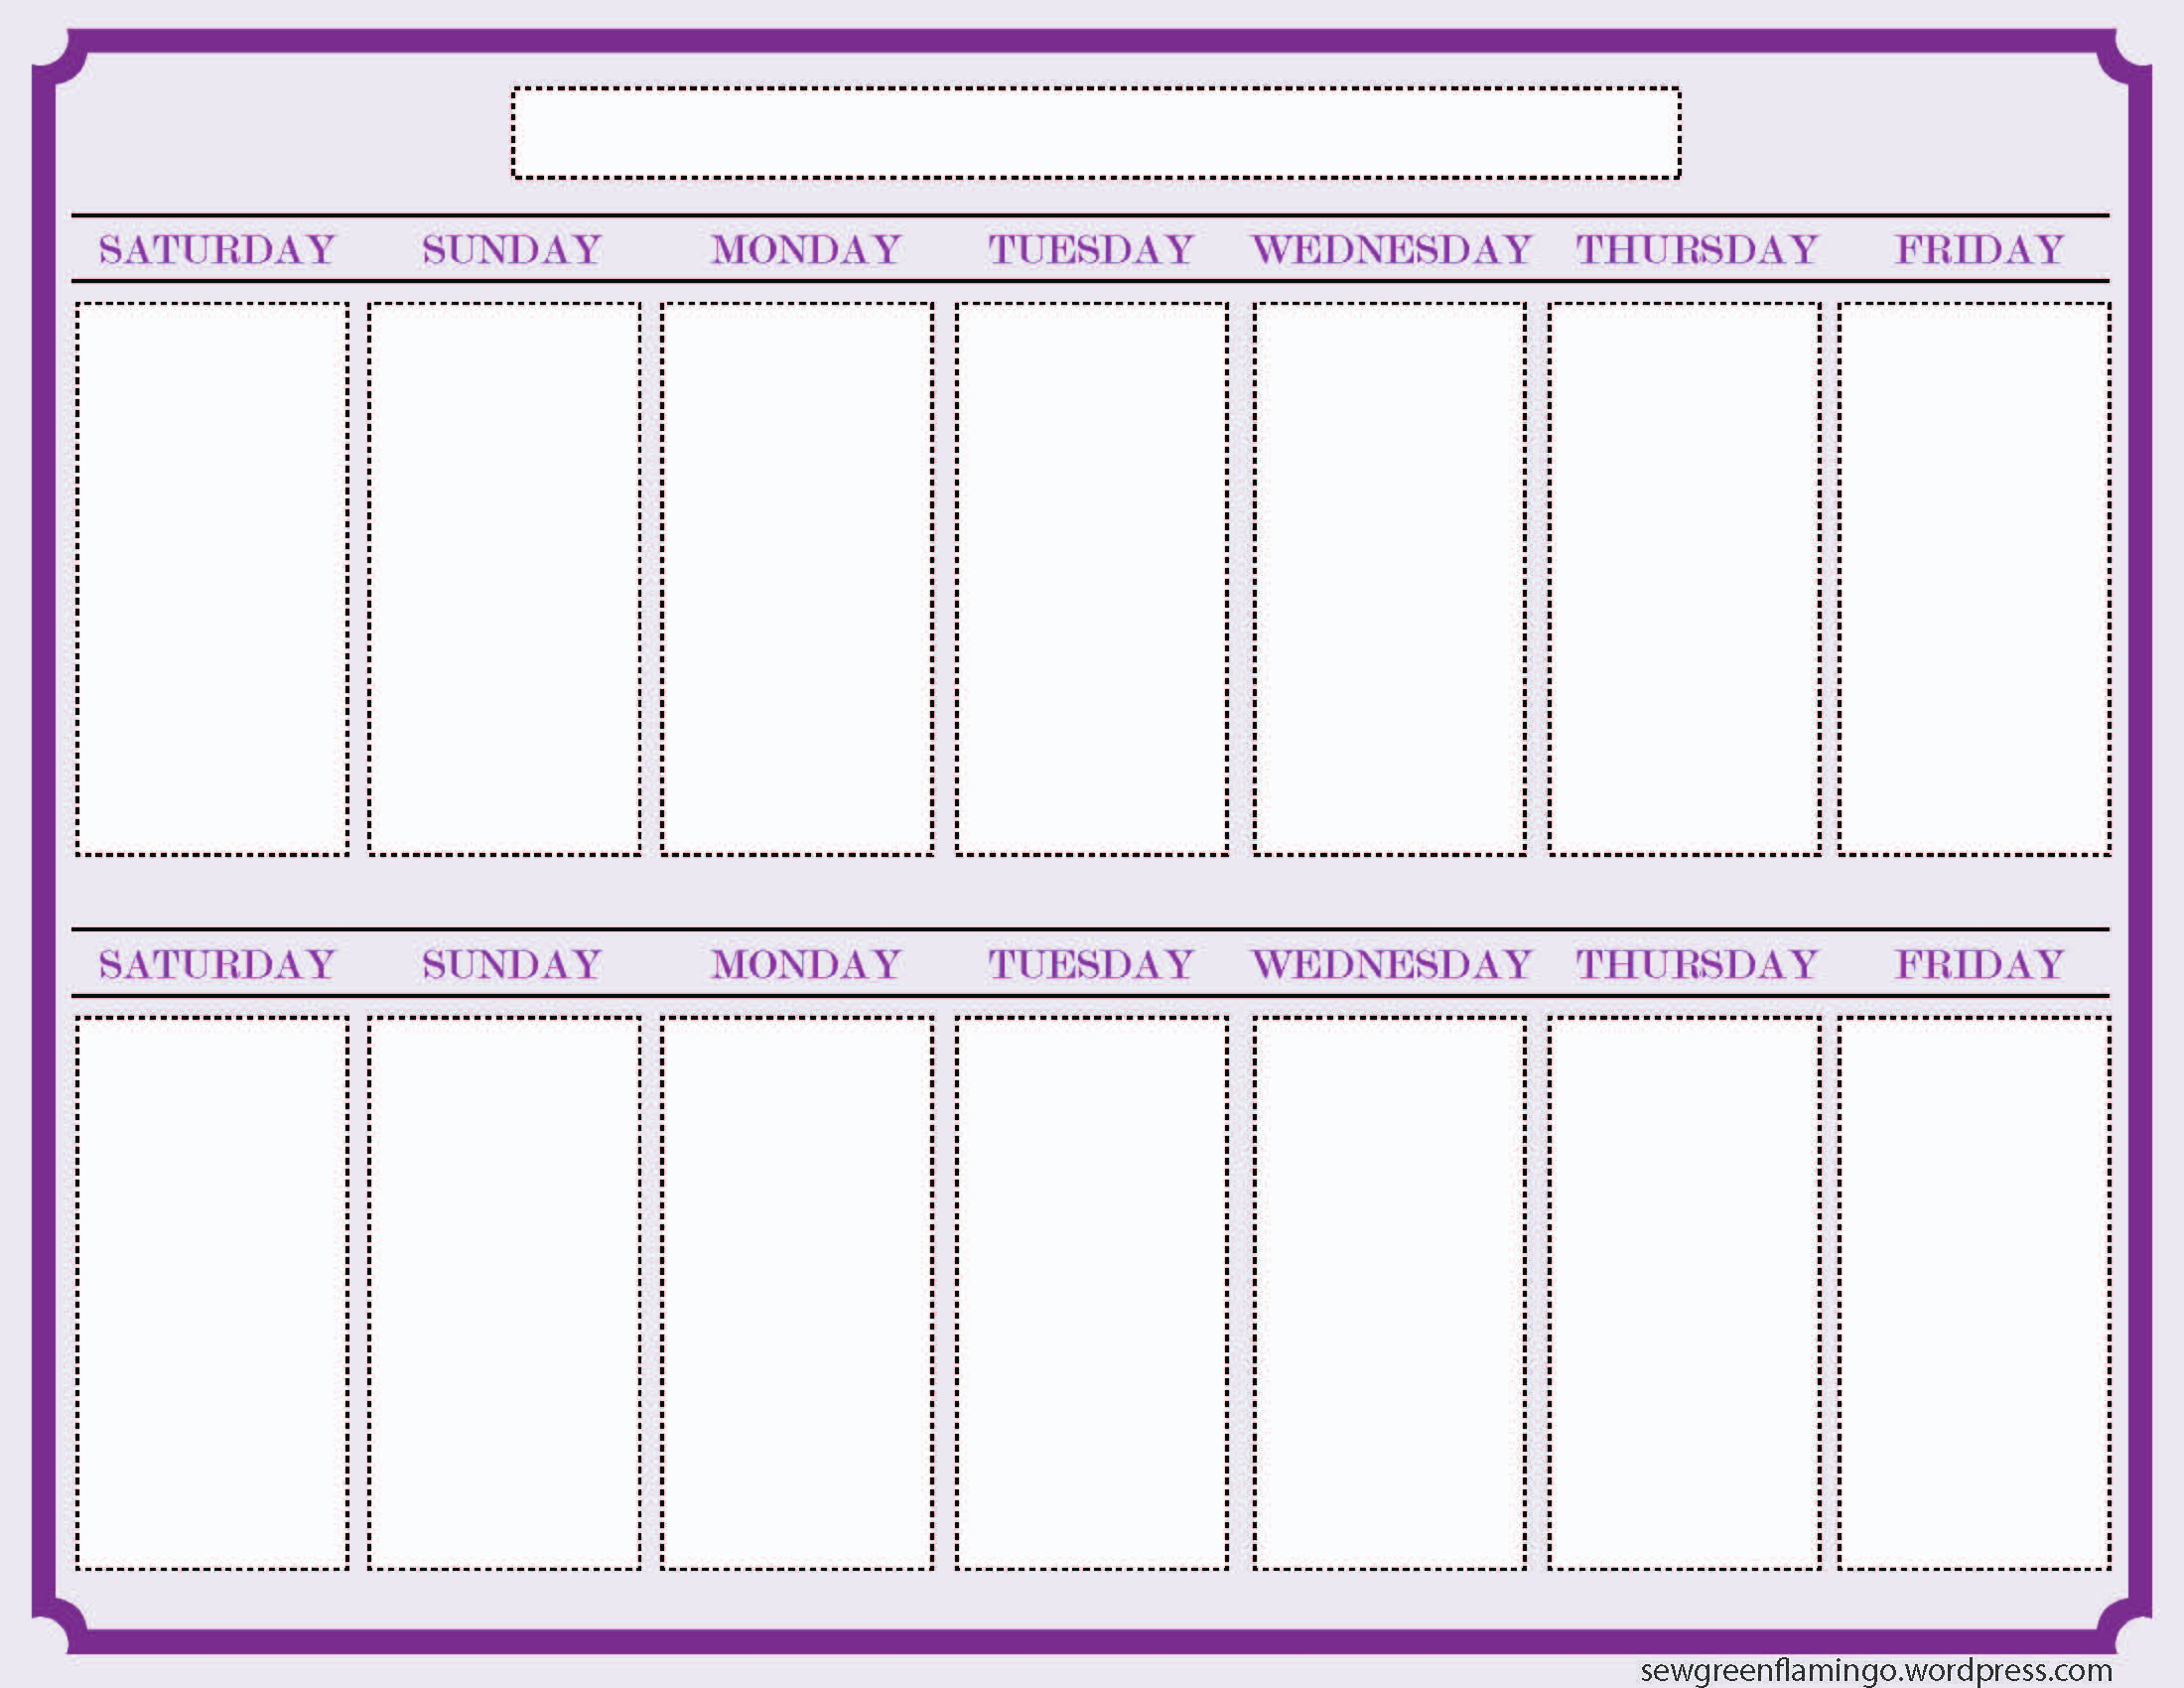 7 Best Images of 2 Week Calendar Template Printable Printable 2